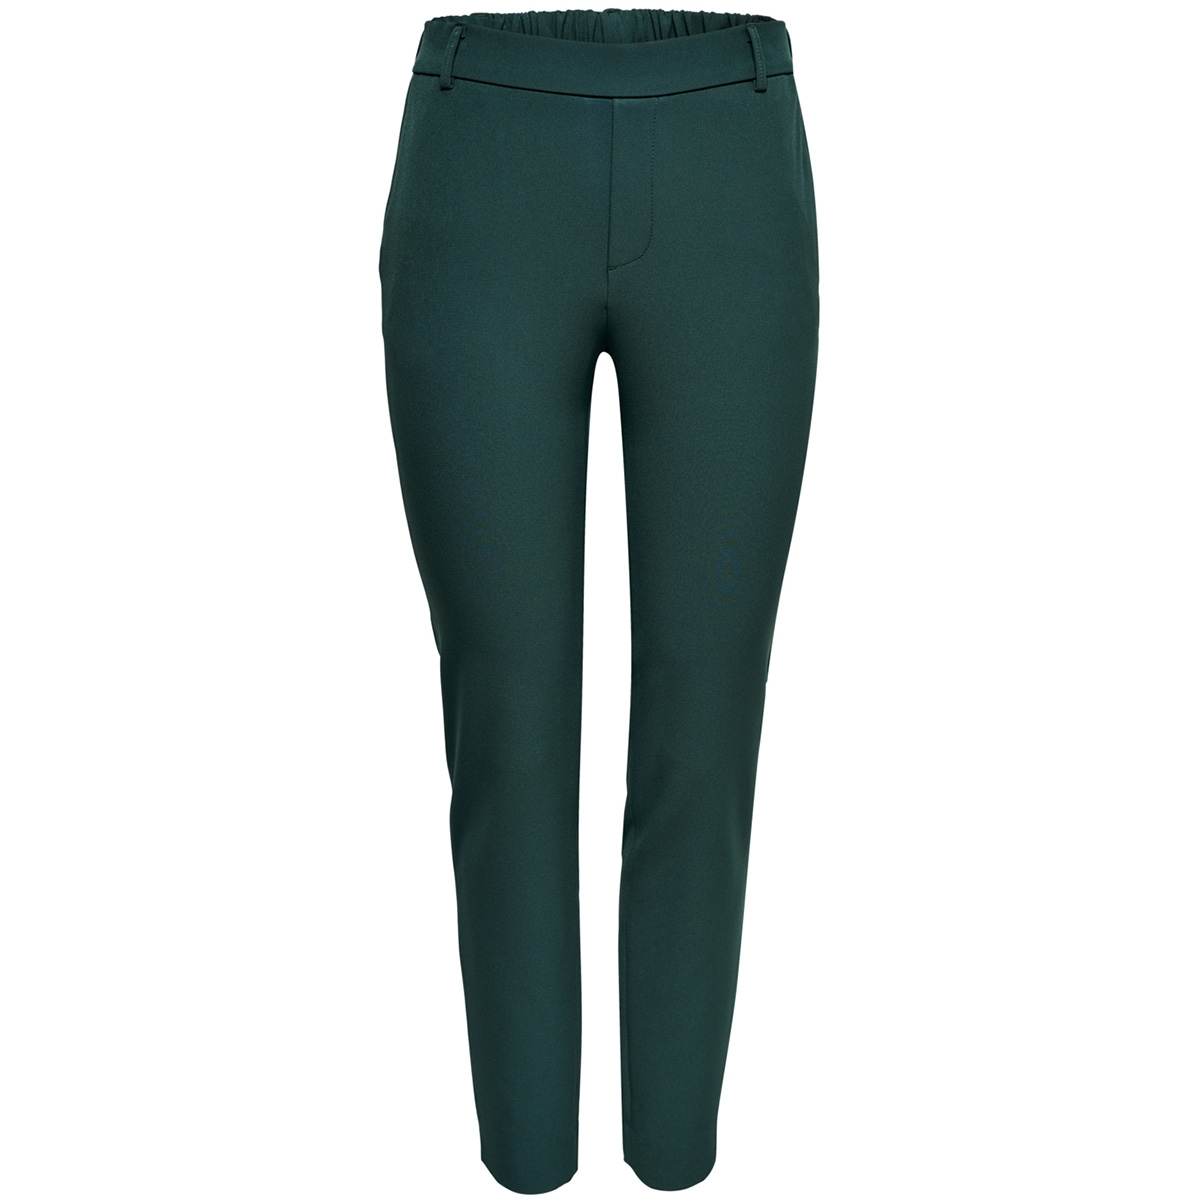 onlglowing mid ankle pant do pnt 15180457 only broek pine grove/green color